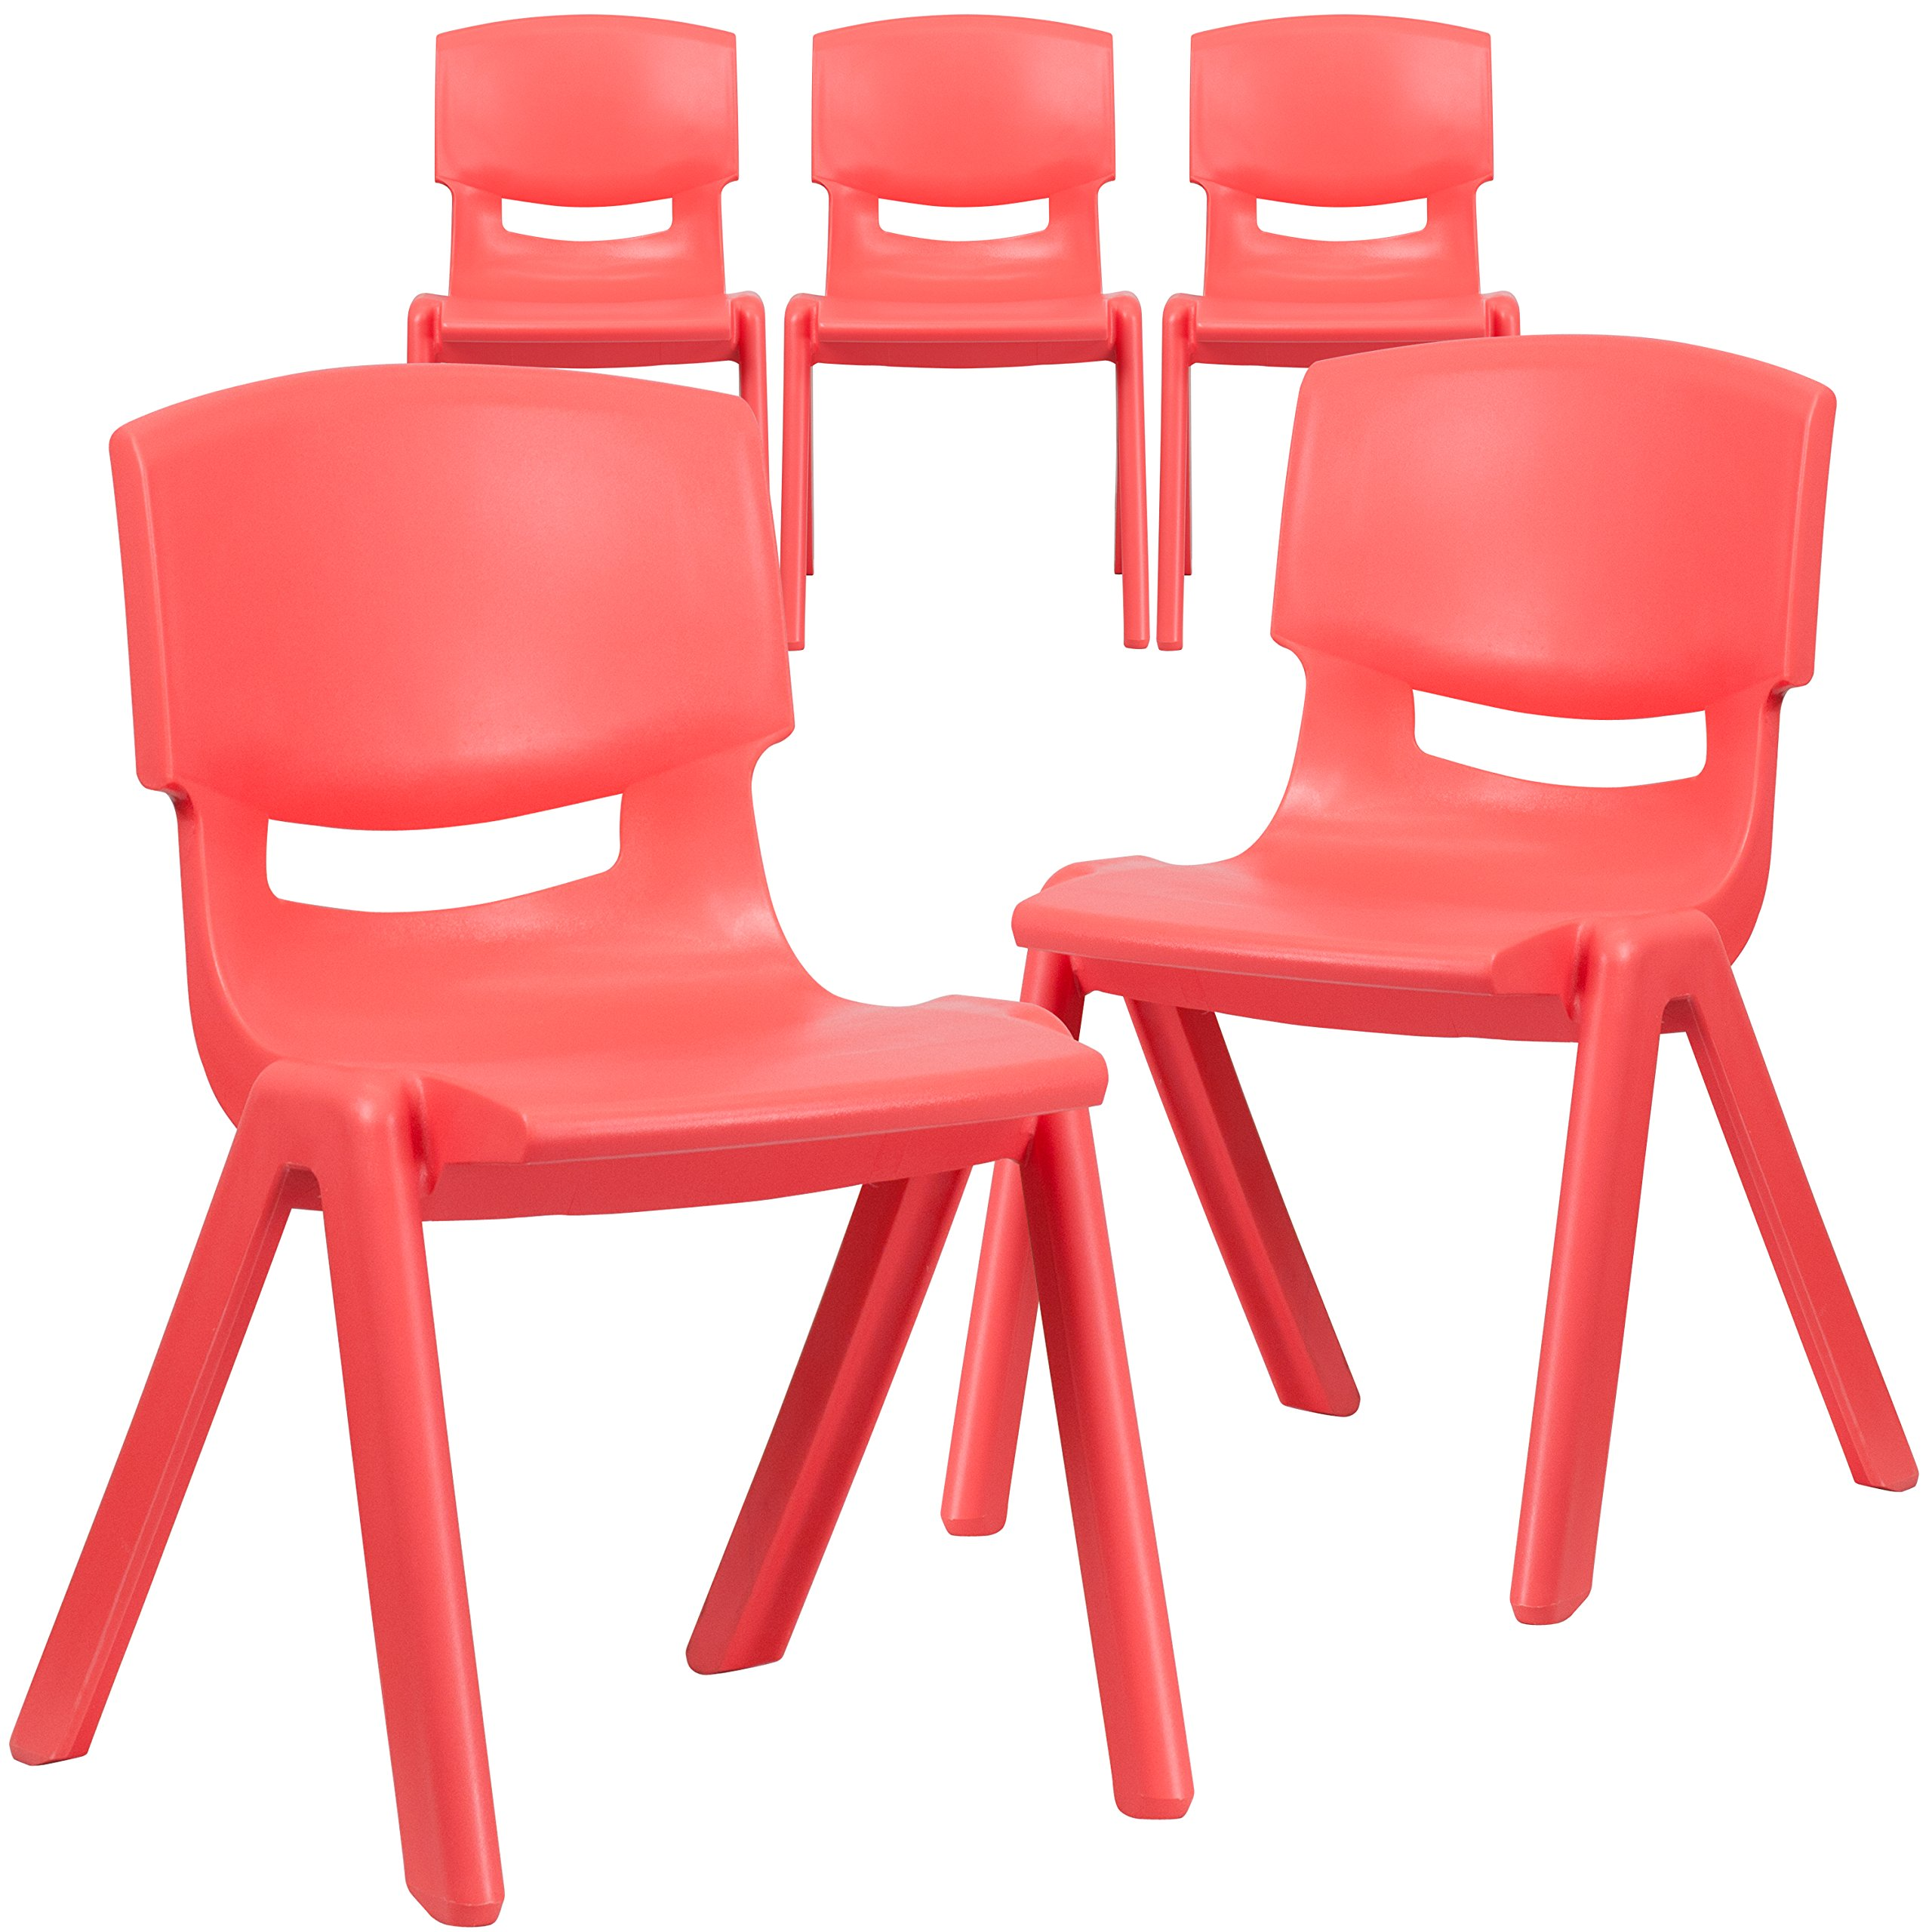 Flash Furniture 5 Pk. Red Plastic Stackable School Chair with 15.5'' Seat Height